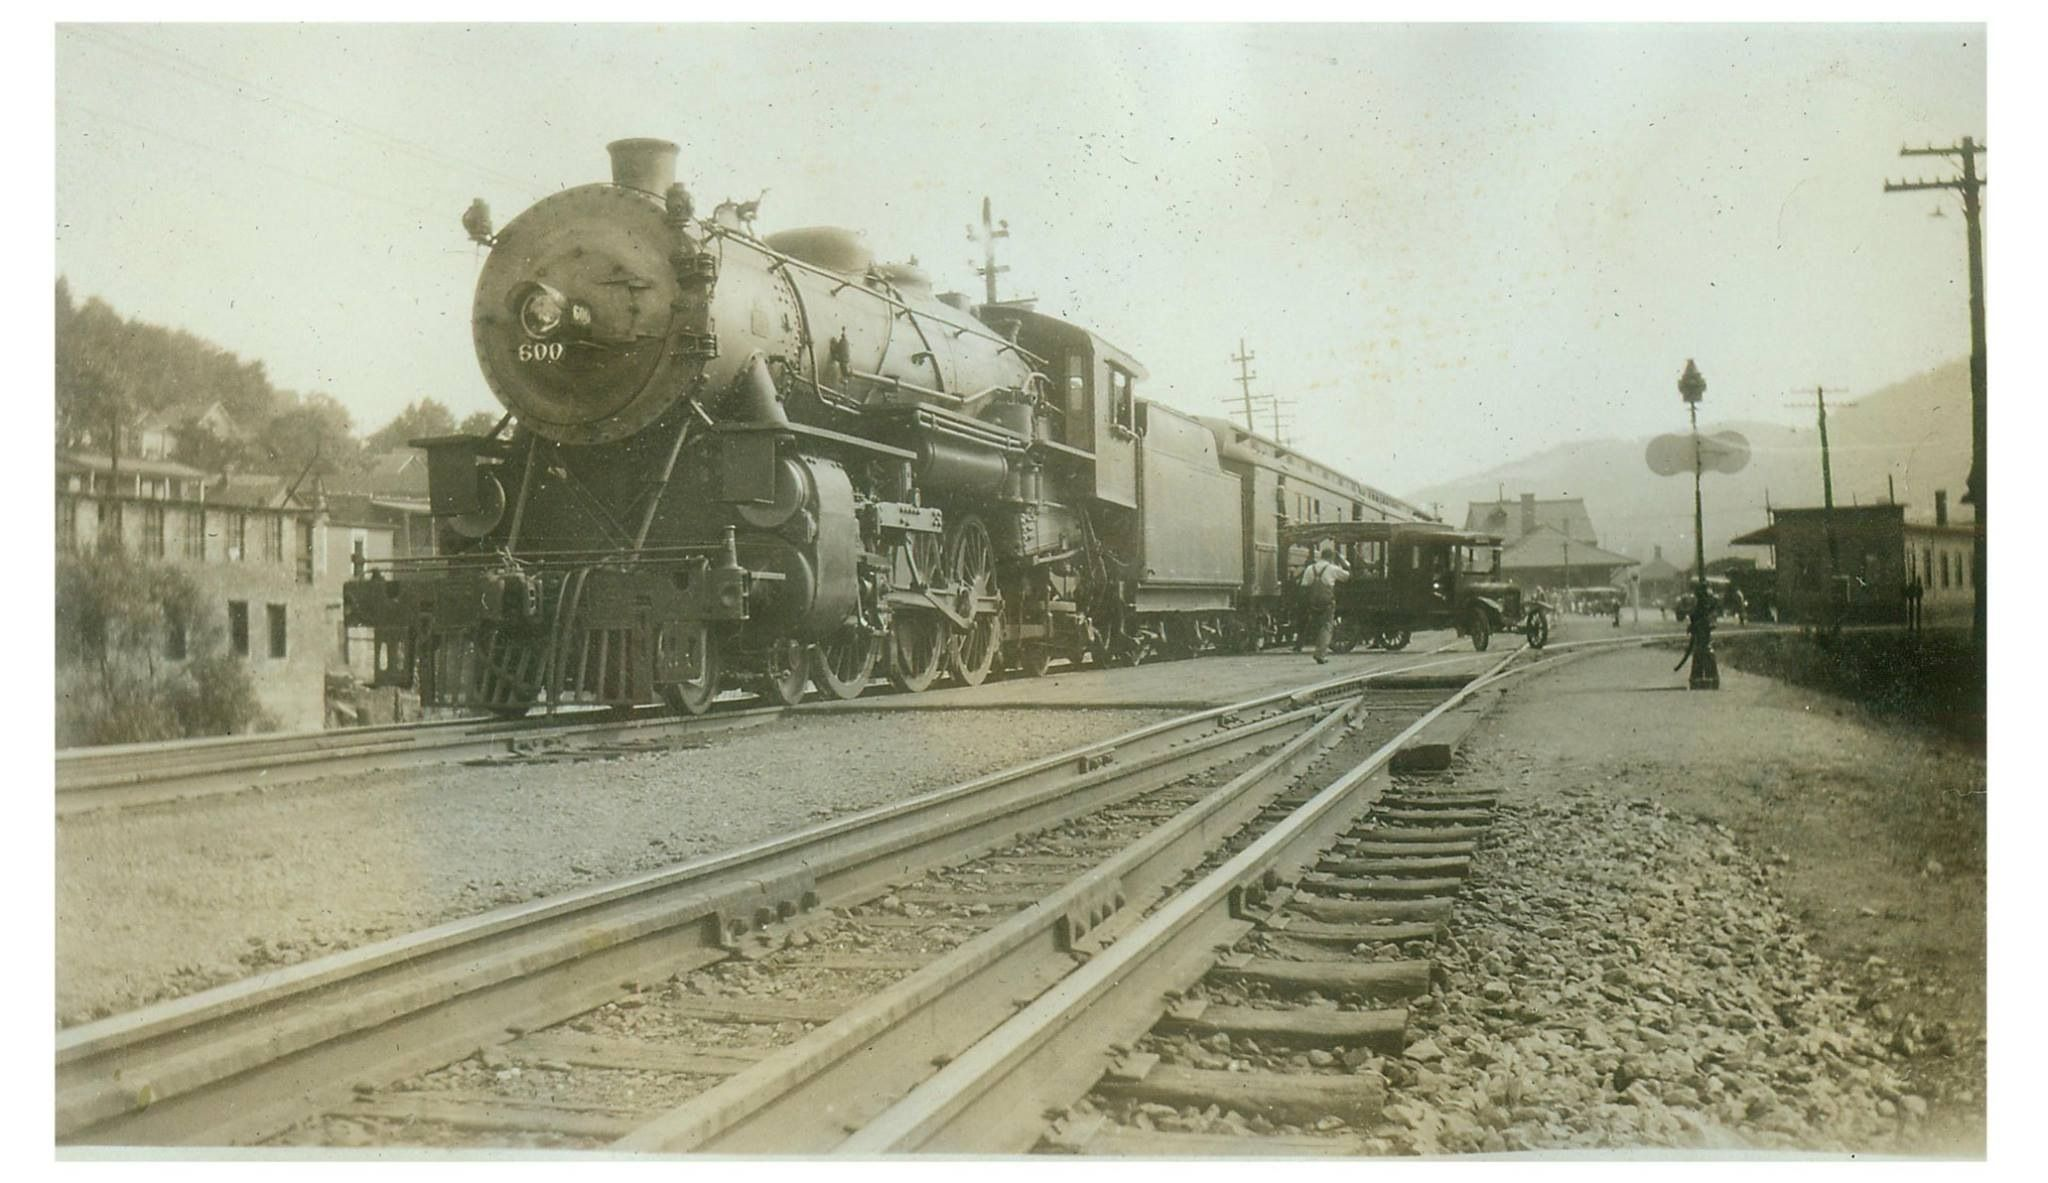 North bound in bradford pa in the twenties with images